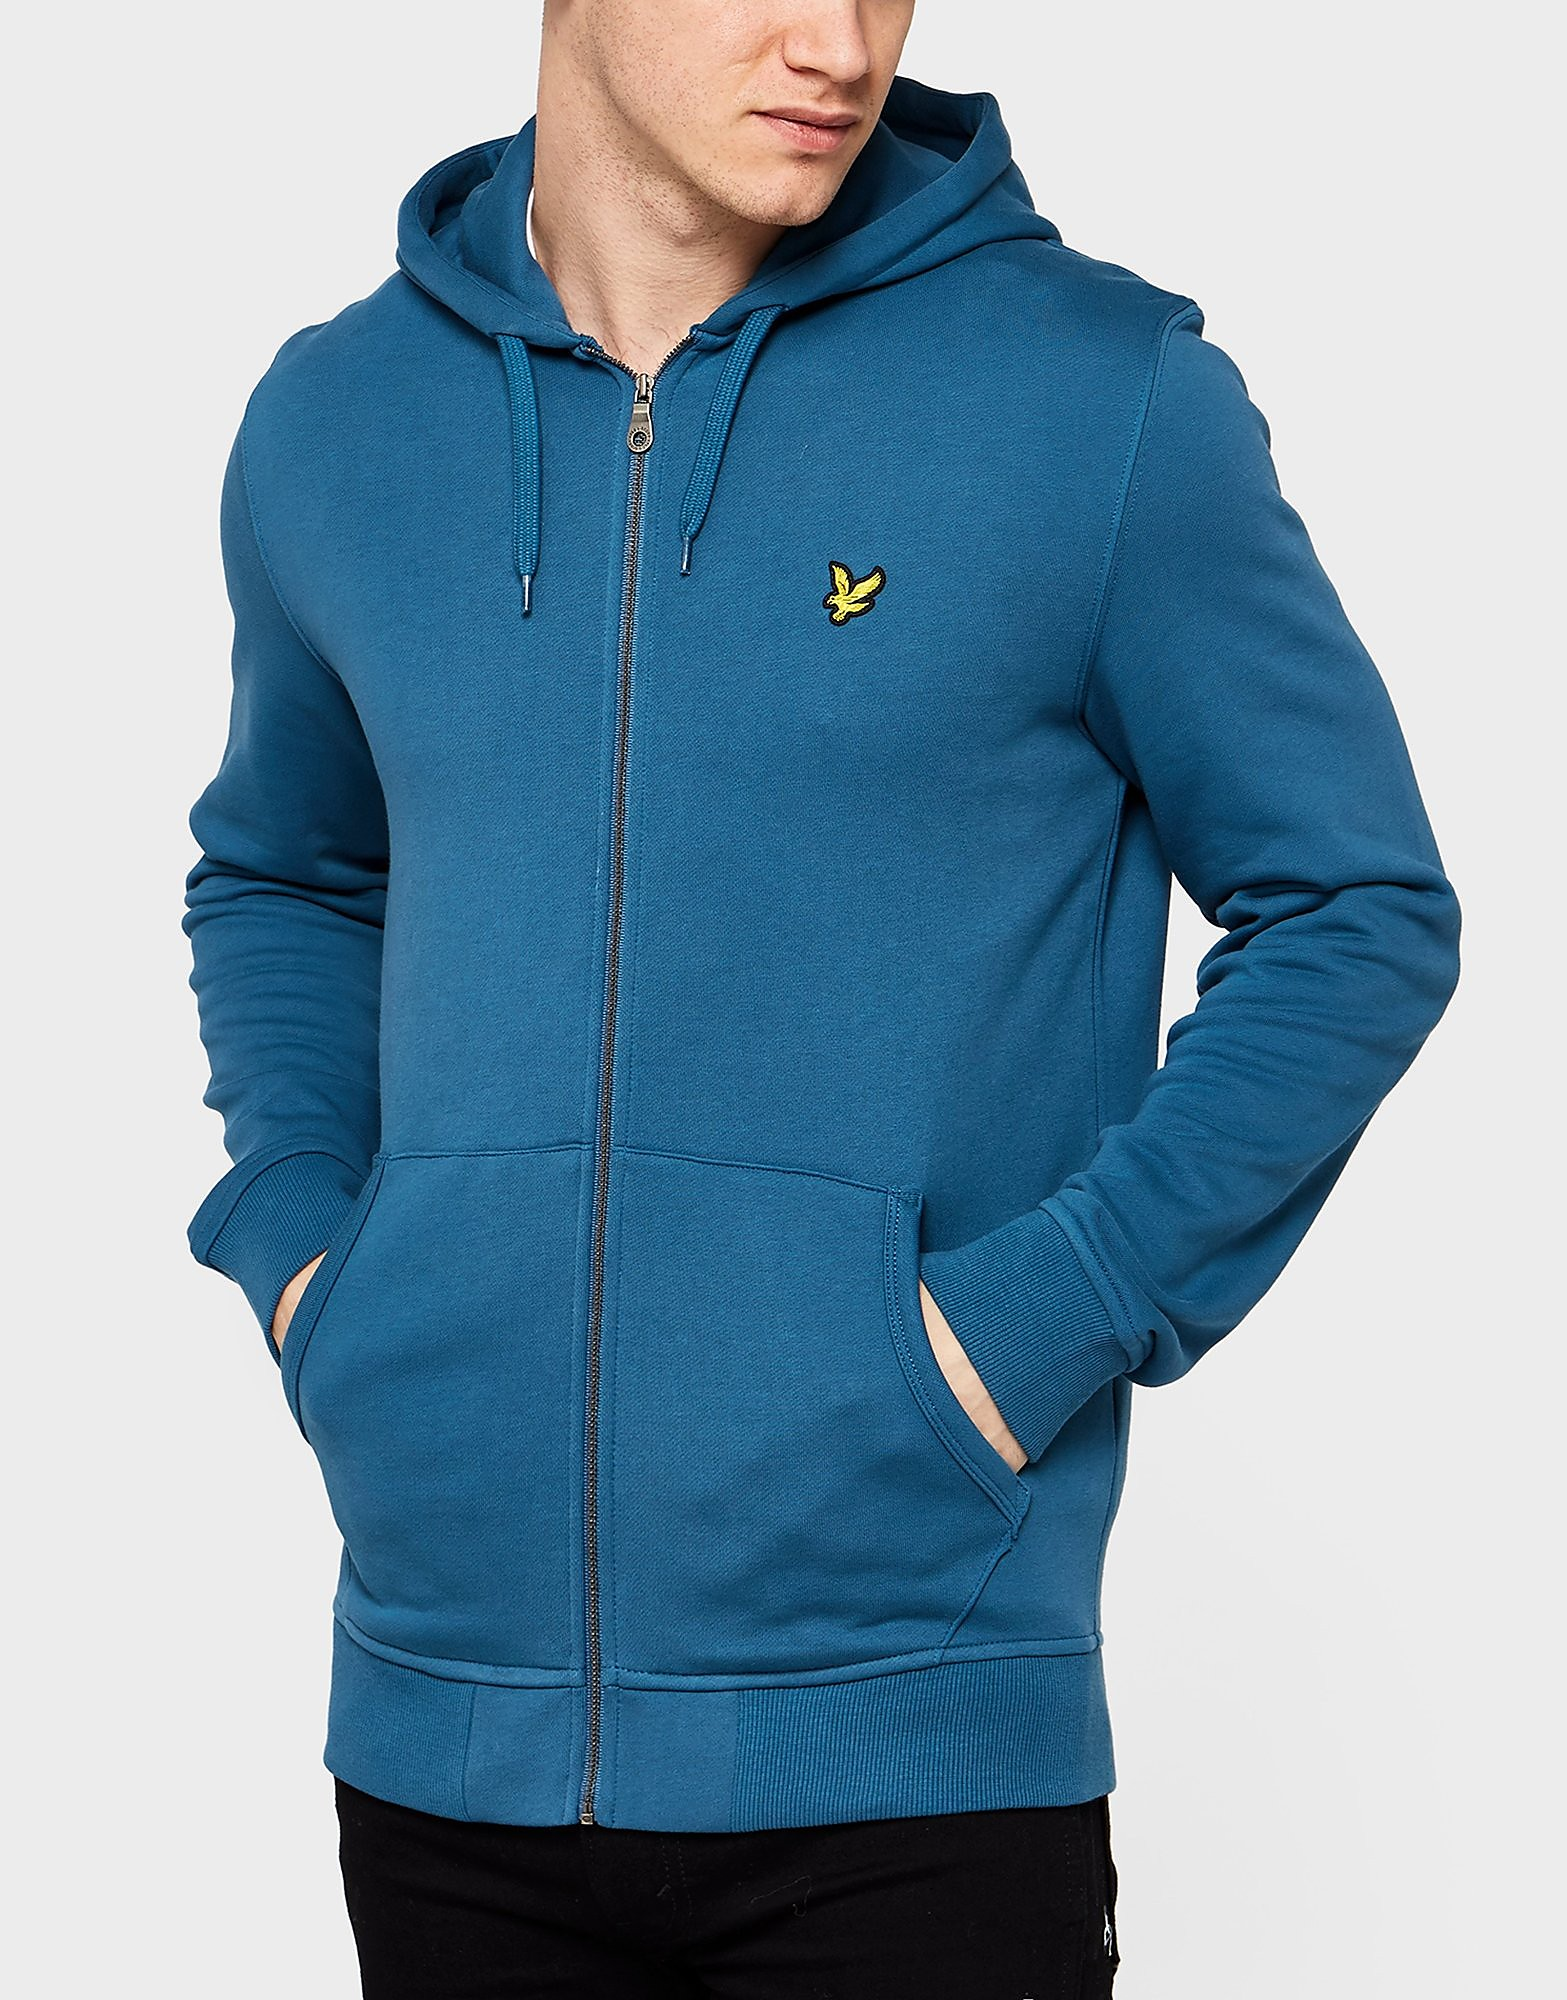 Lyle & Scott Full Zipped Hoody